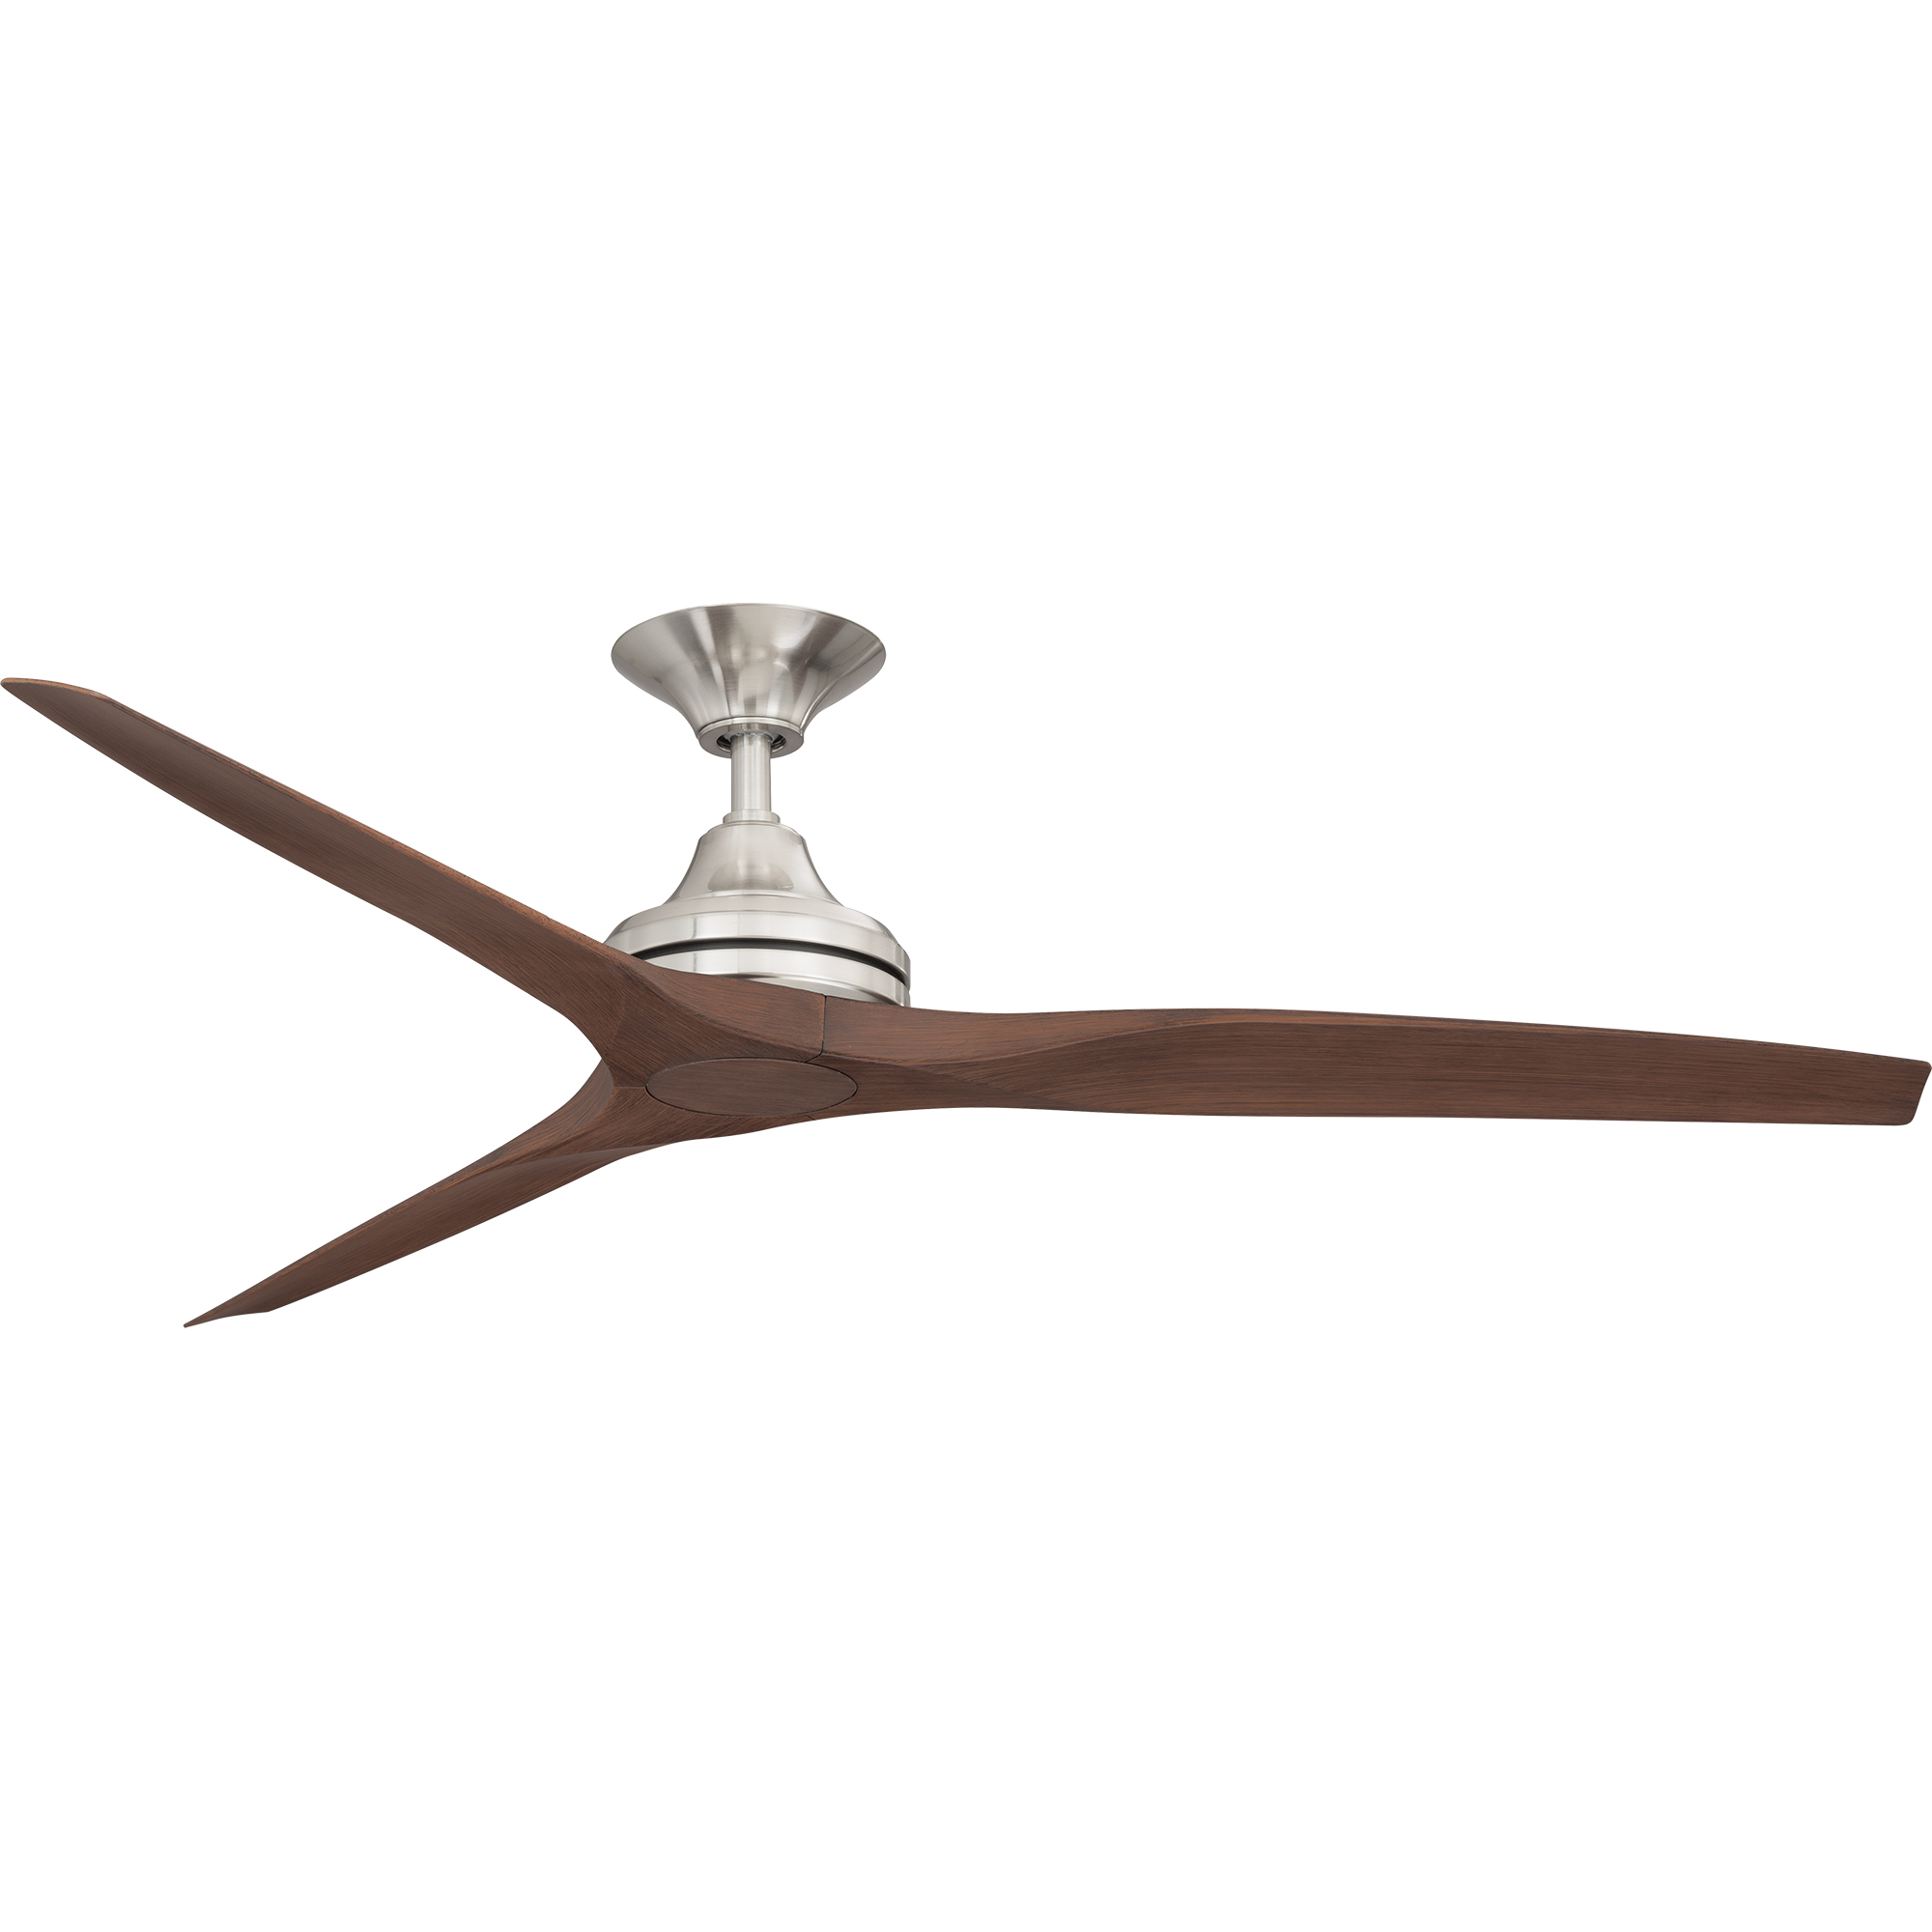 """60"""" Spitfire ceiling fan in Brushed Nickel with Walnut polymer blades"""